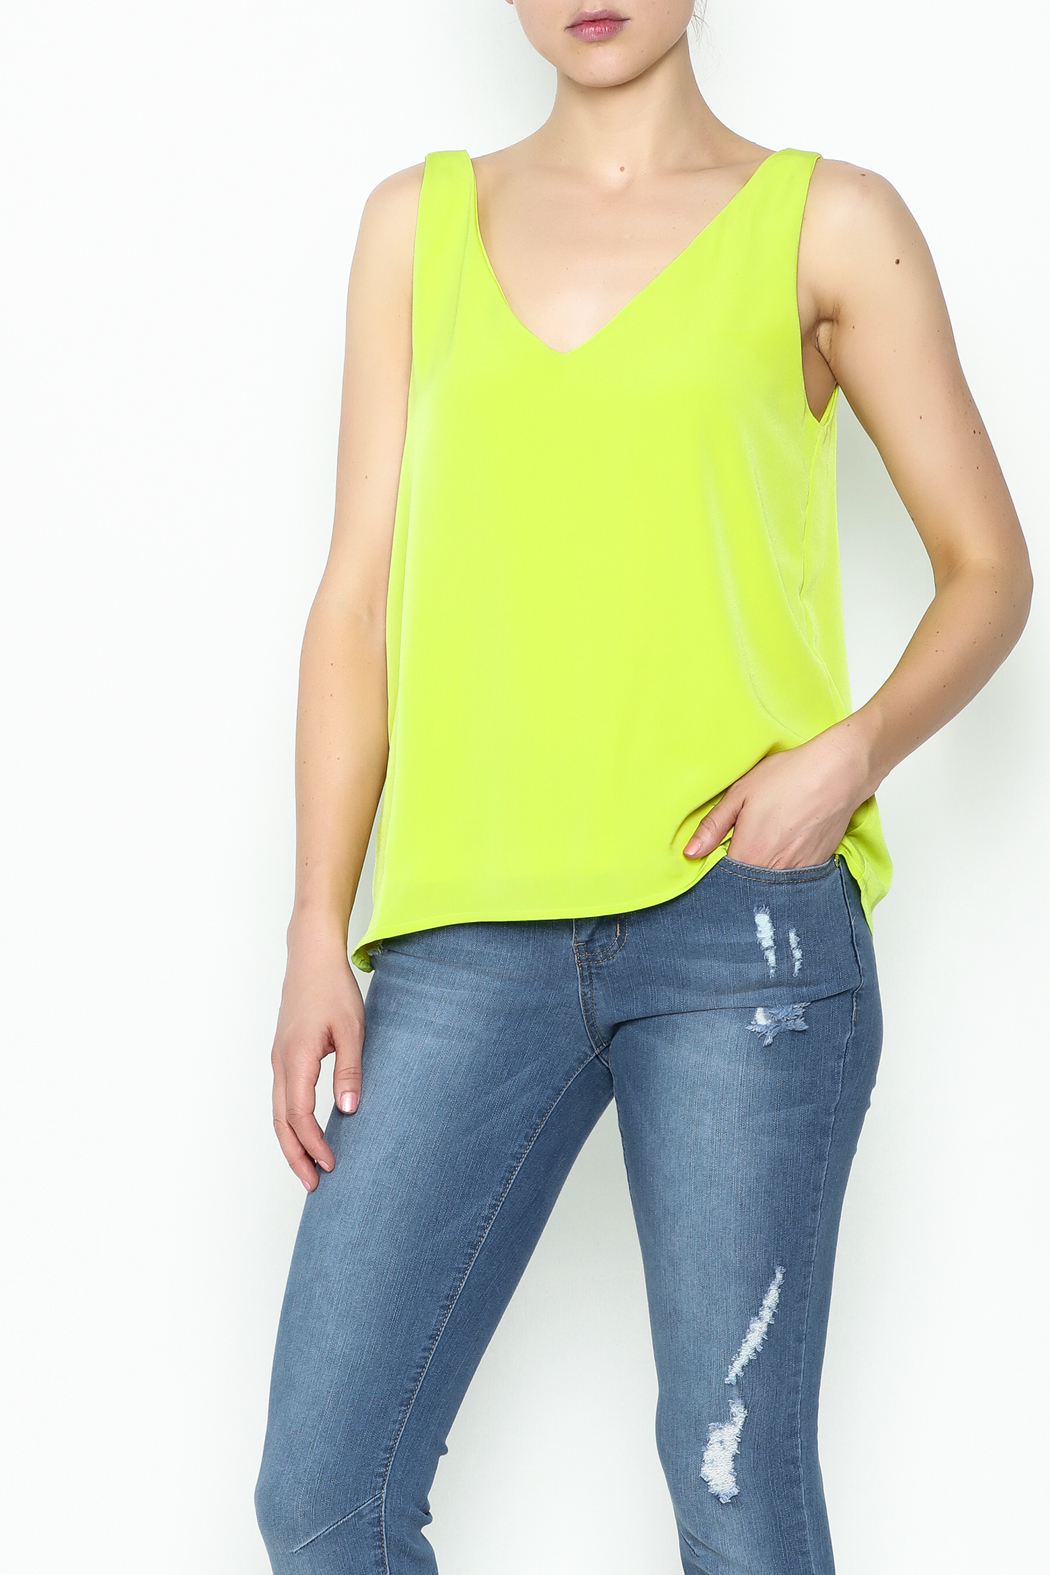 Sweet Rain Yellow Tank Top - Front Cropped Image